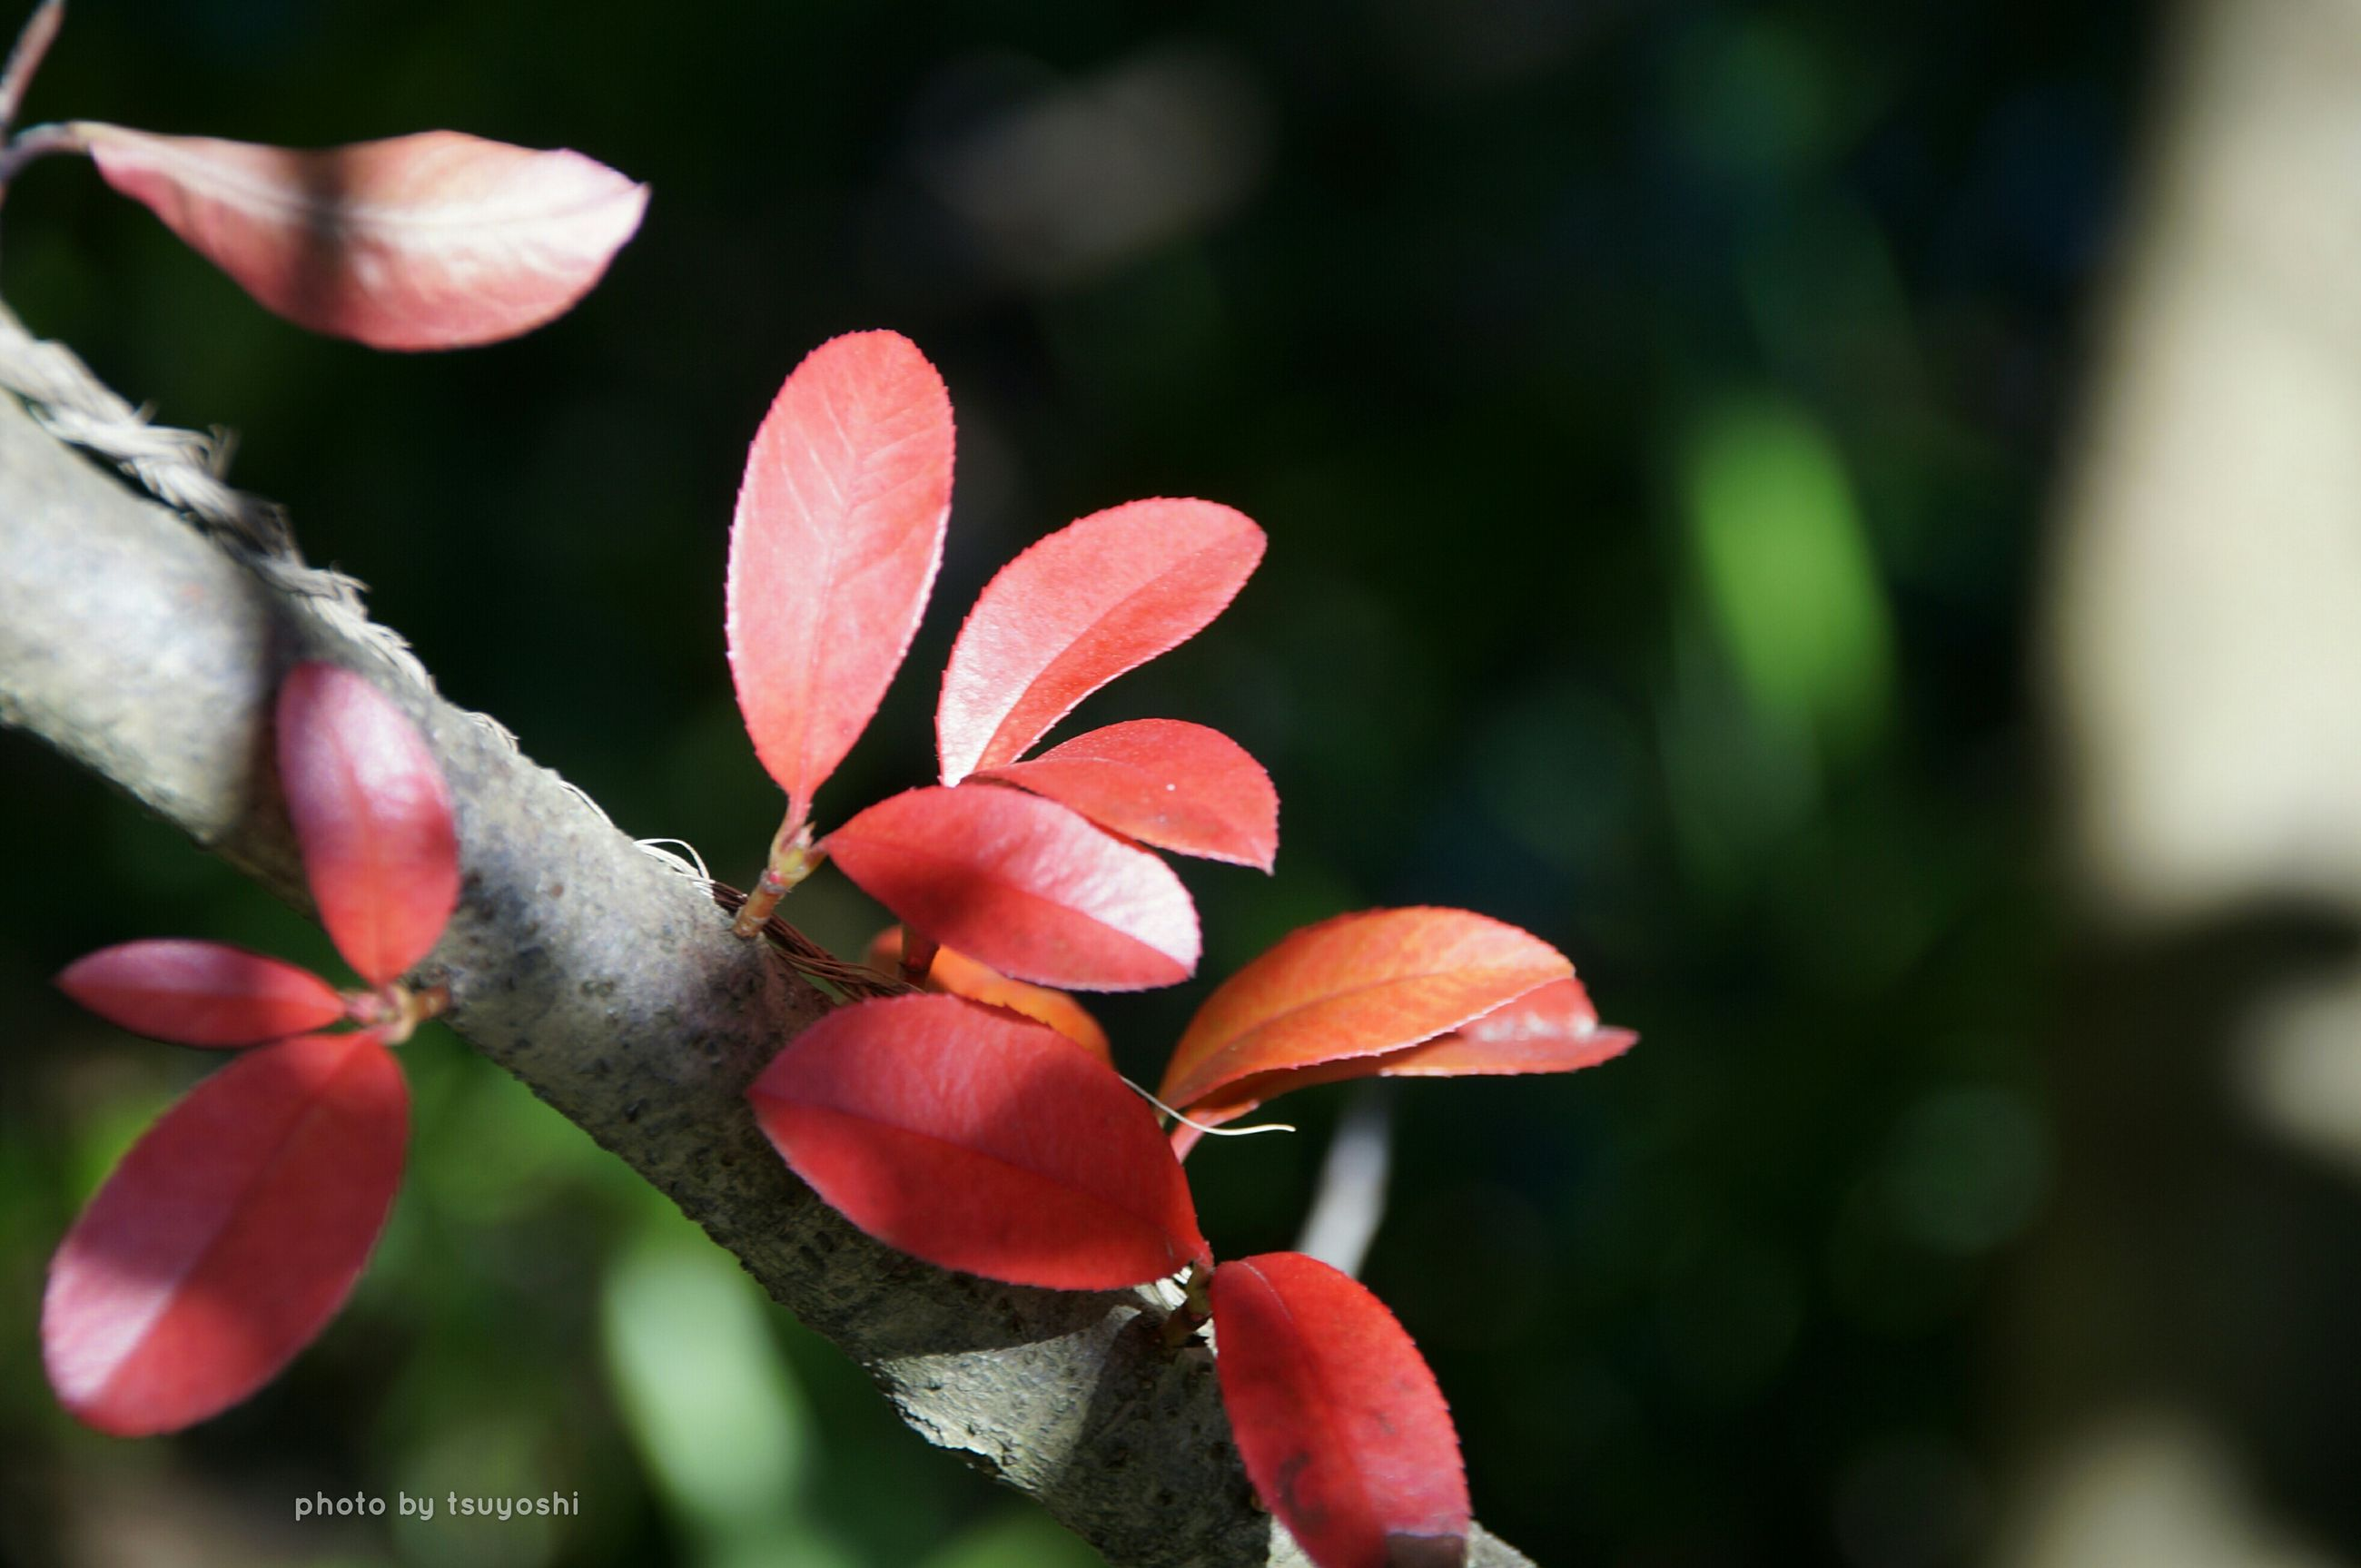 flower, freshness, petal, growth, fragility, close-up, focus on foreground, flower head, beauty in nature, nature, bud, red, pink color, blooming, plant, stem, in bloom, blossom, stamen, selective focus